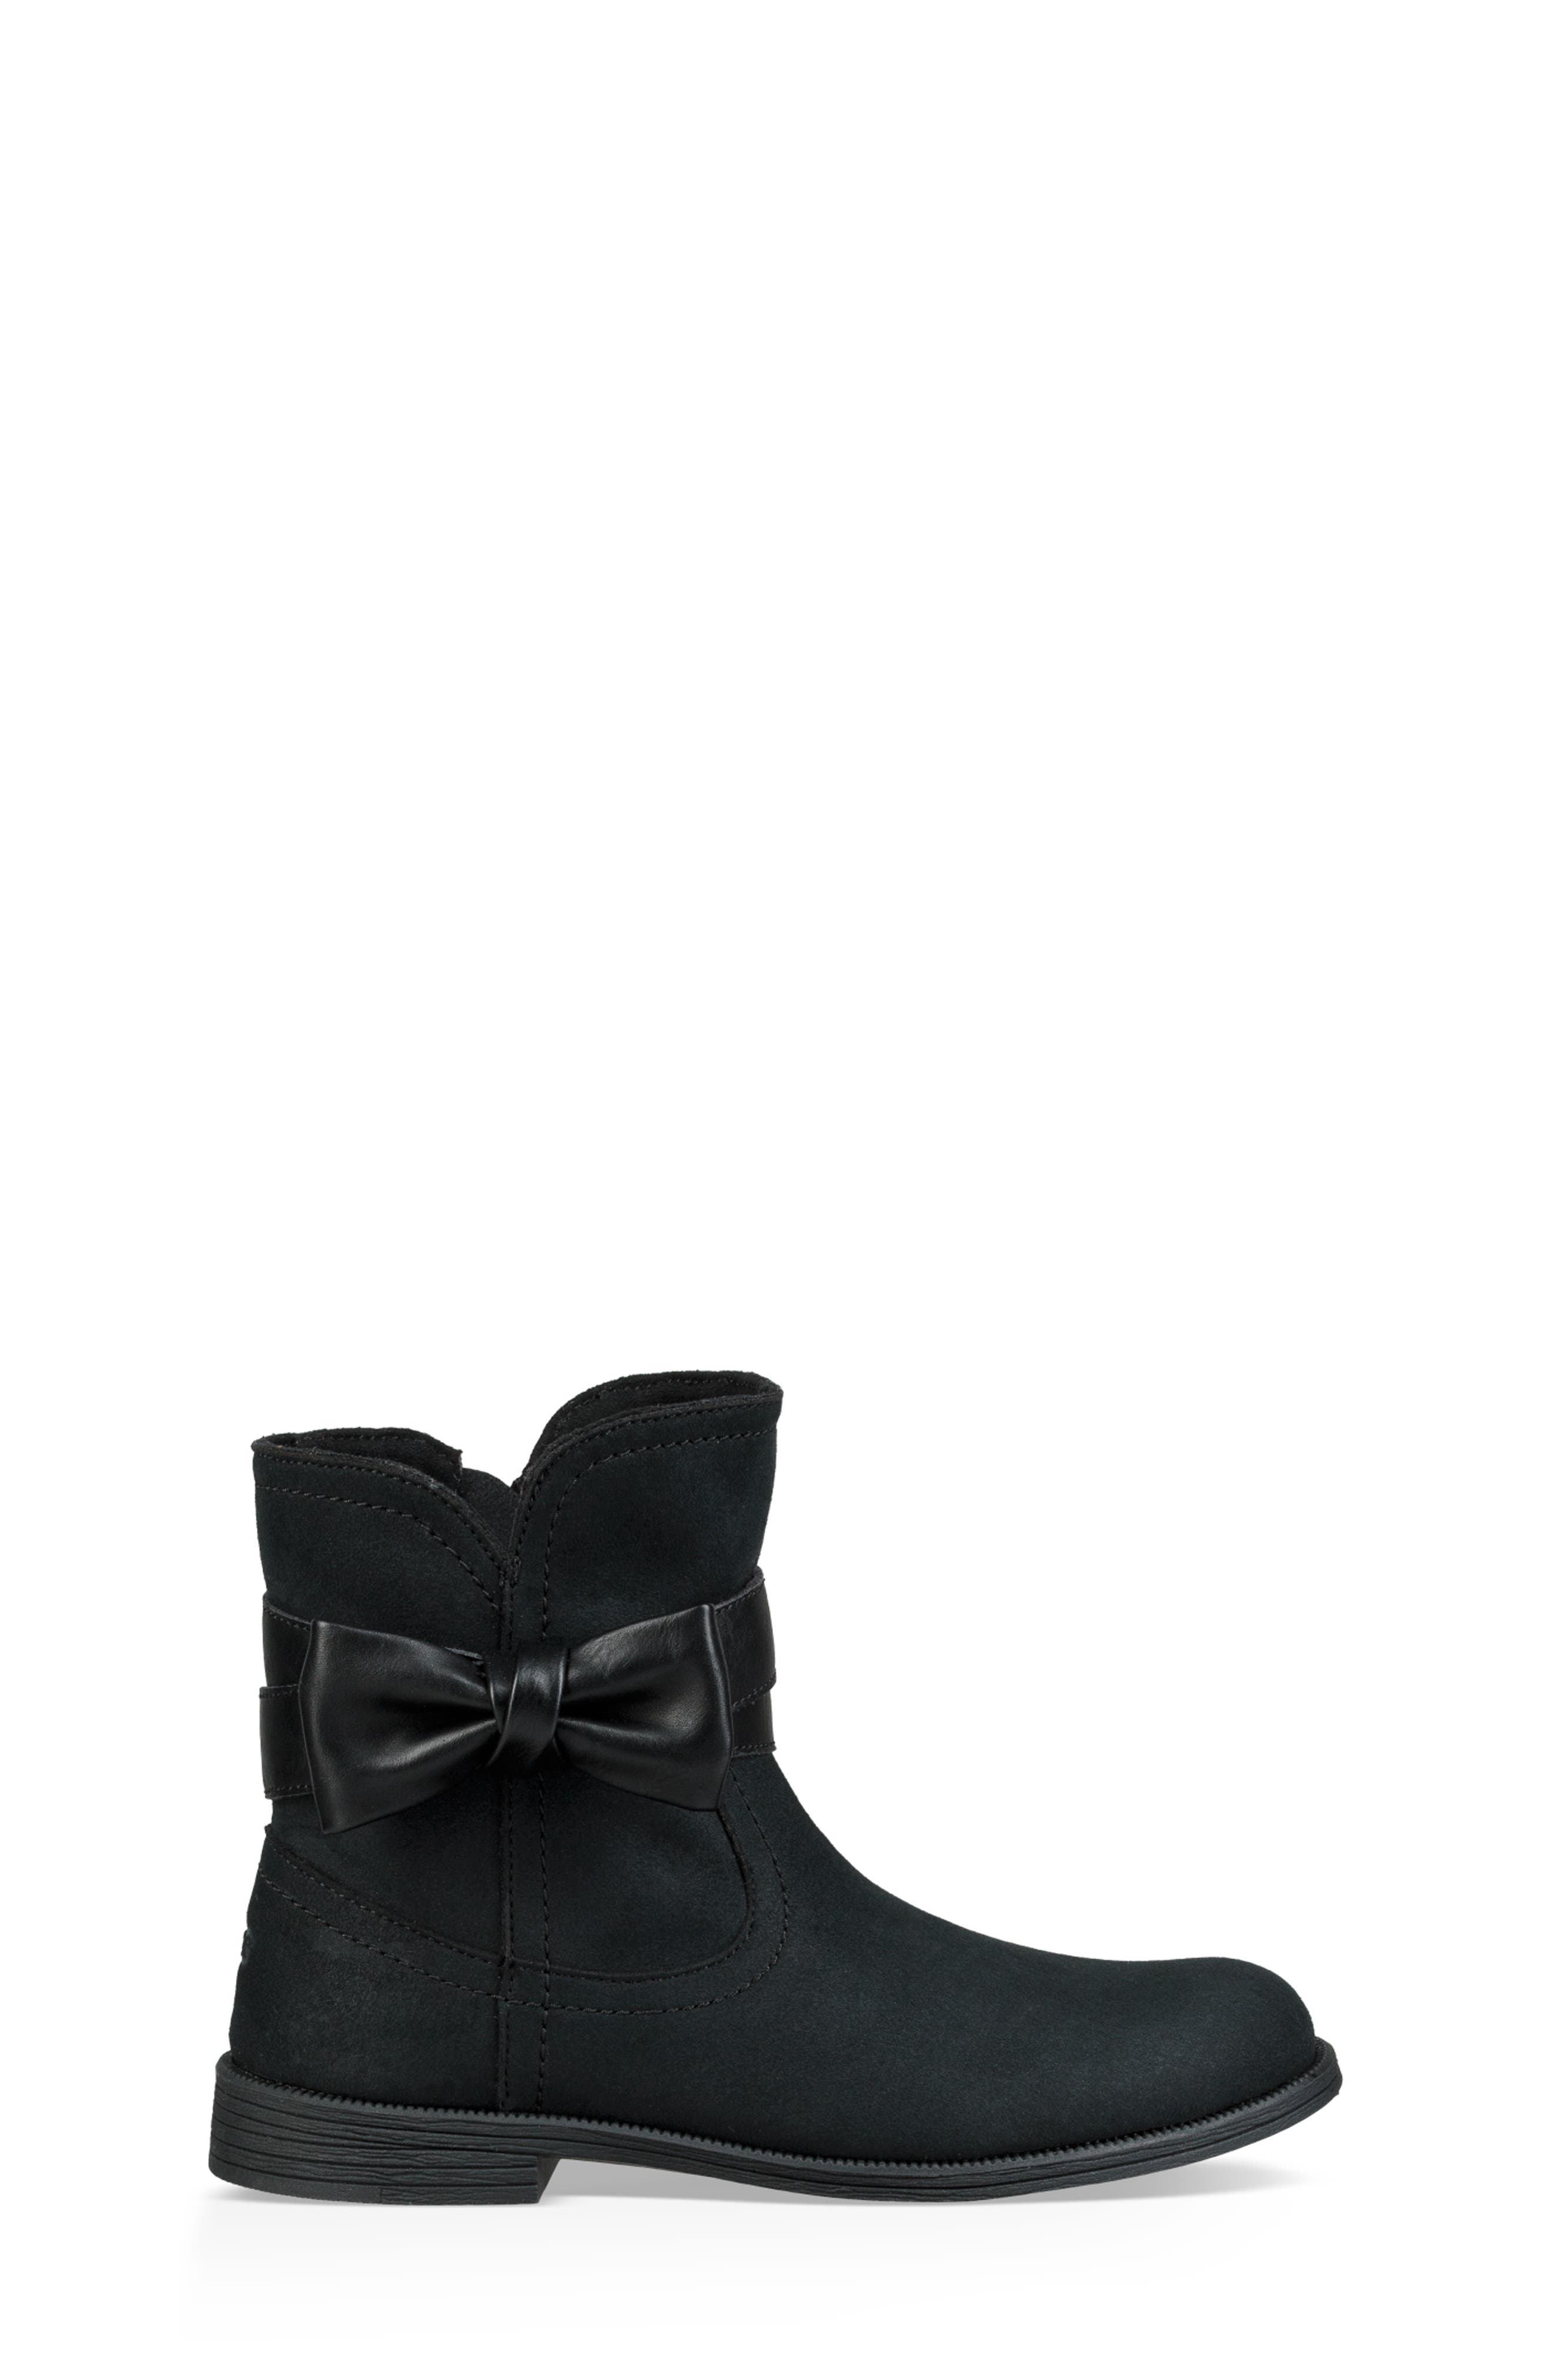 UGG<SUP>®</SUP>, UGG Joanie Bow Boot, Alternate thumbnail 3, color, BLACK